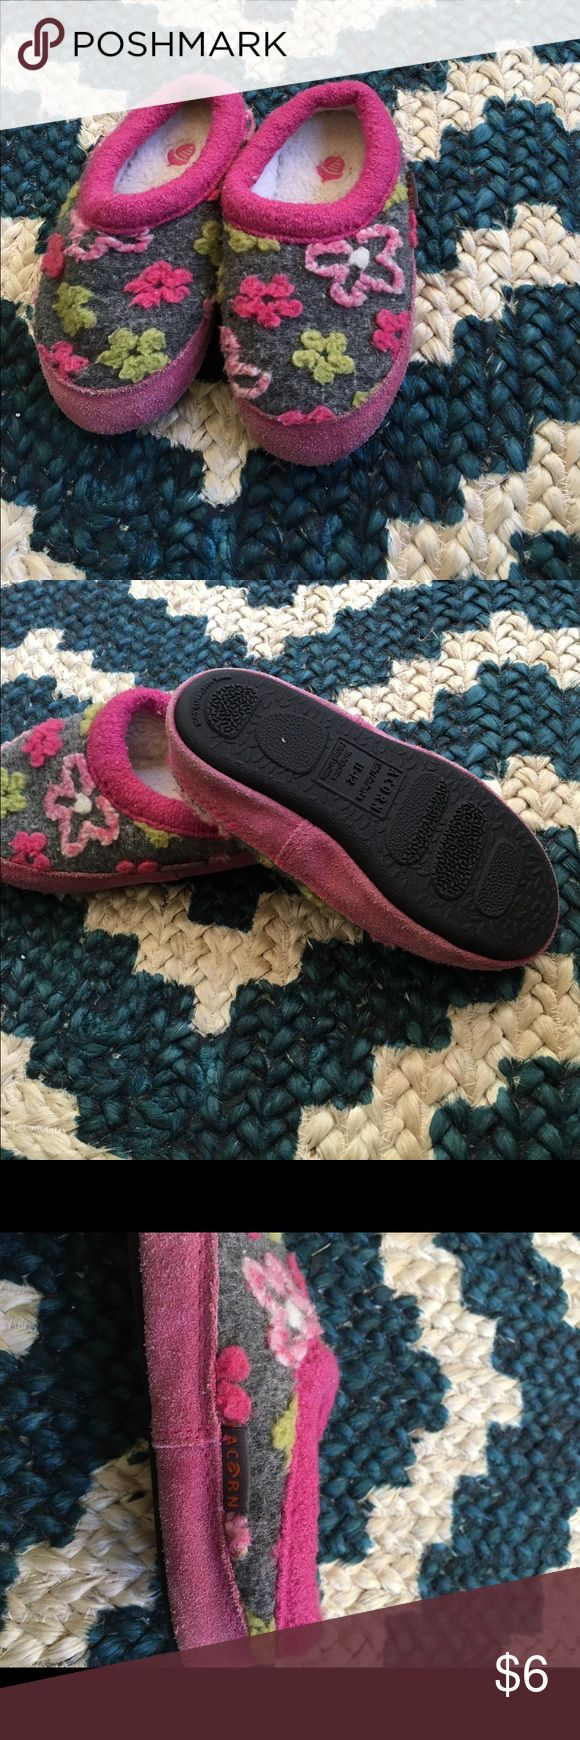 Acorn slippers Size 11-12. Good condition. Have been previously loved, but still in good condition Acorn Shoes Slippers